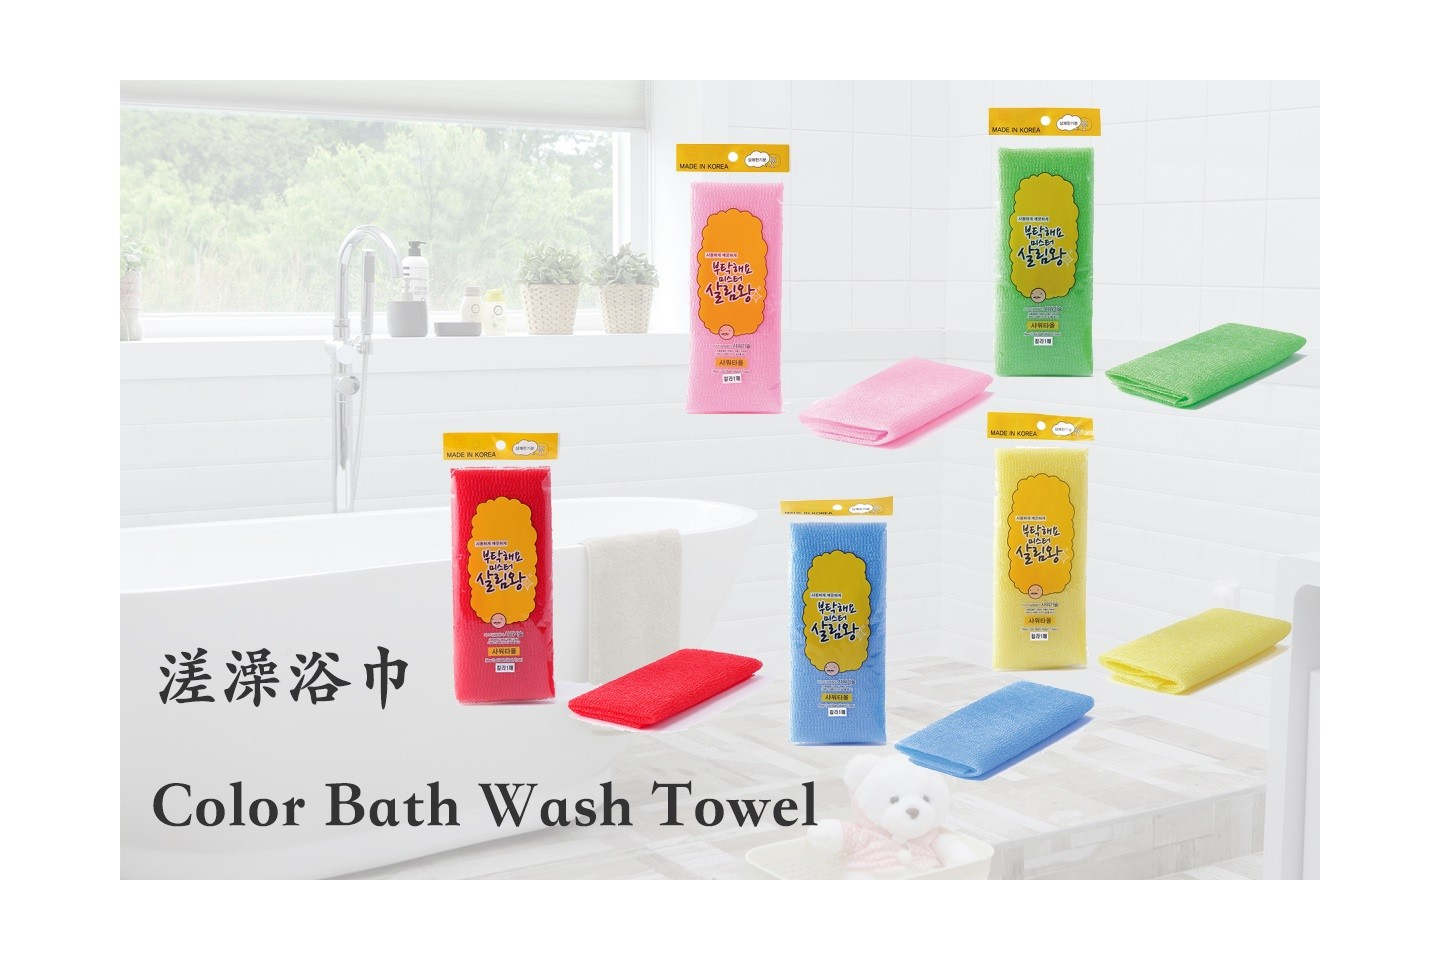 金牌管家溠澡浴巾 Mr King of HouseKeeping Color Bath Wash Towel (五條混色包裝)